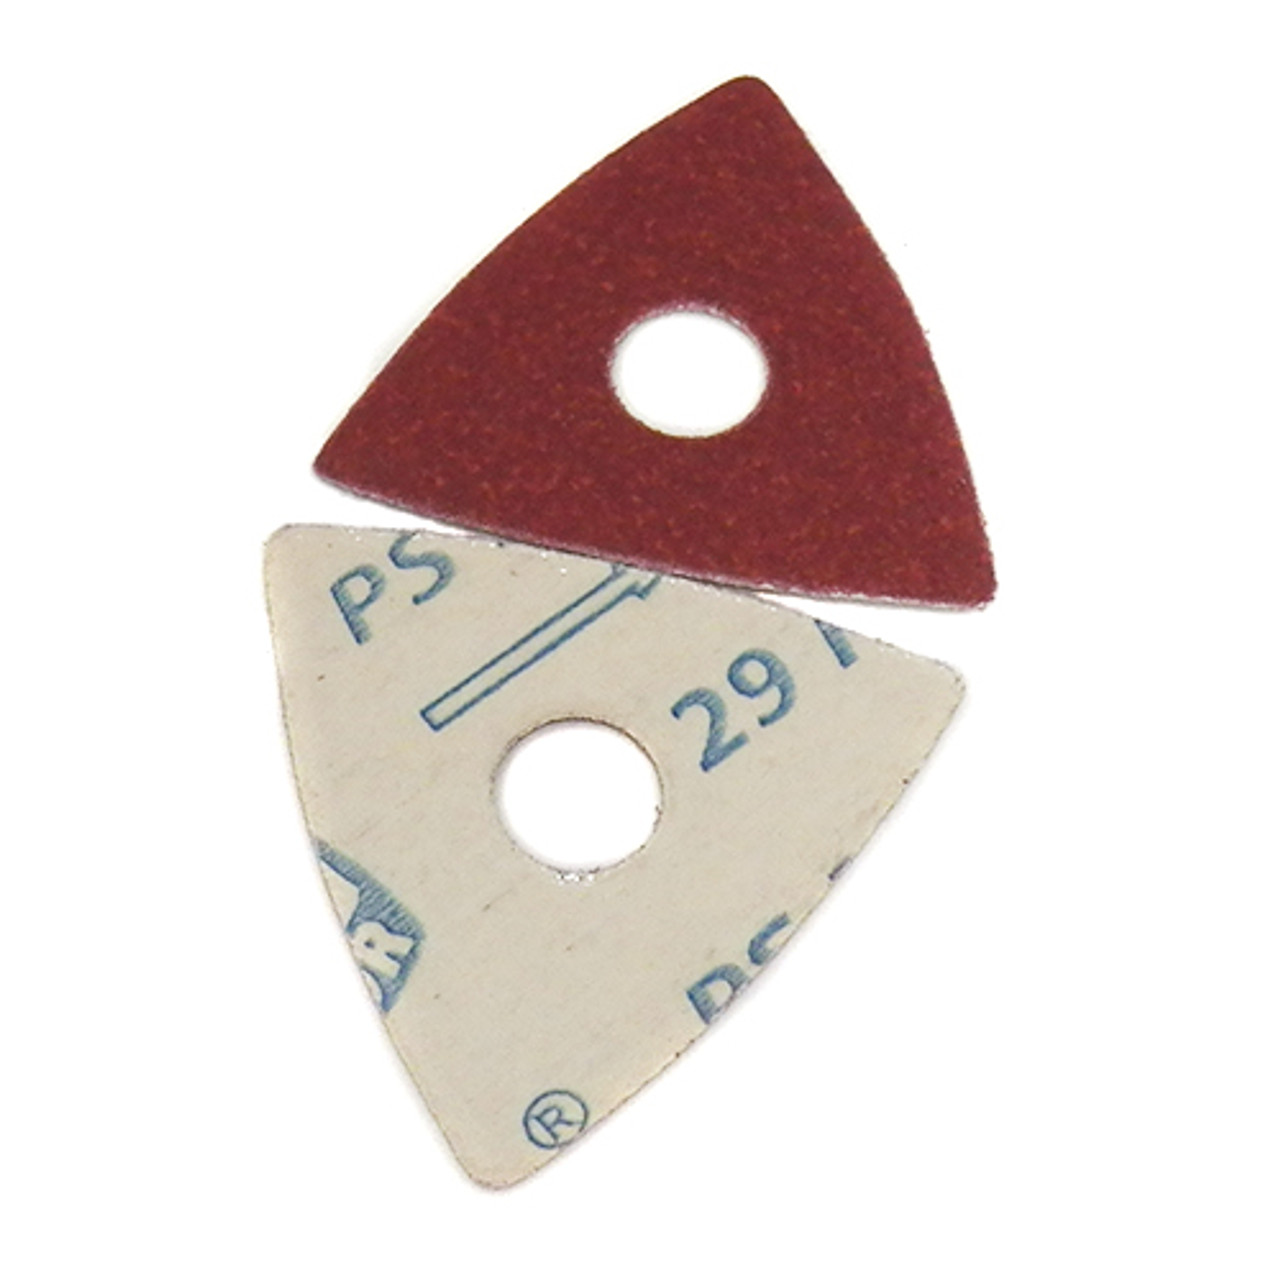 Fein MultiMaster Adhesive Triangles w/Center Hole, Aluminum Oxide, 40 Grit, 50pk